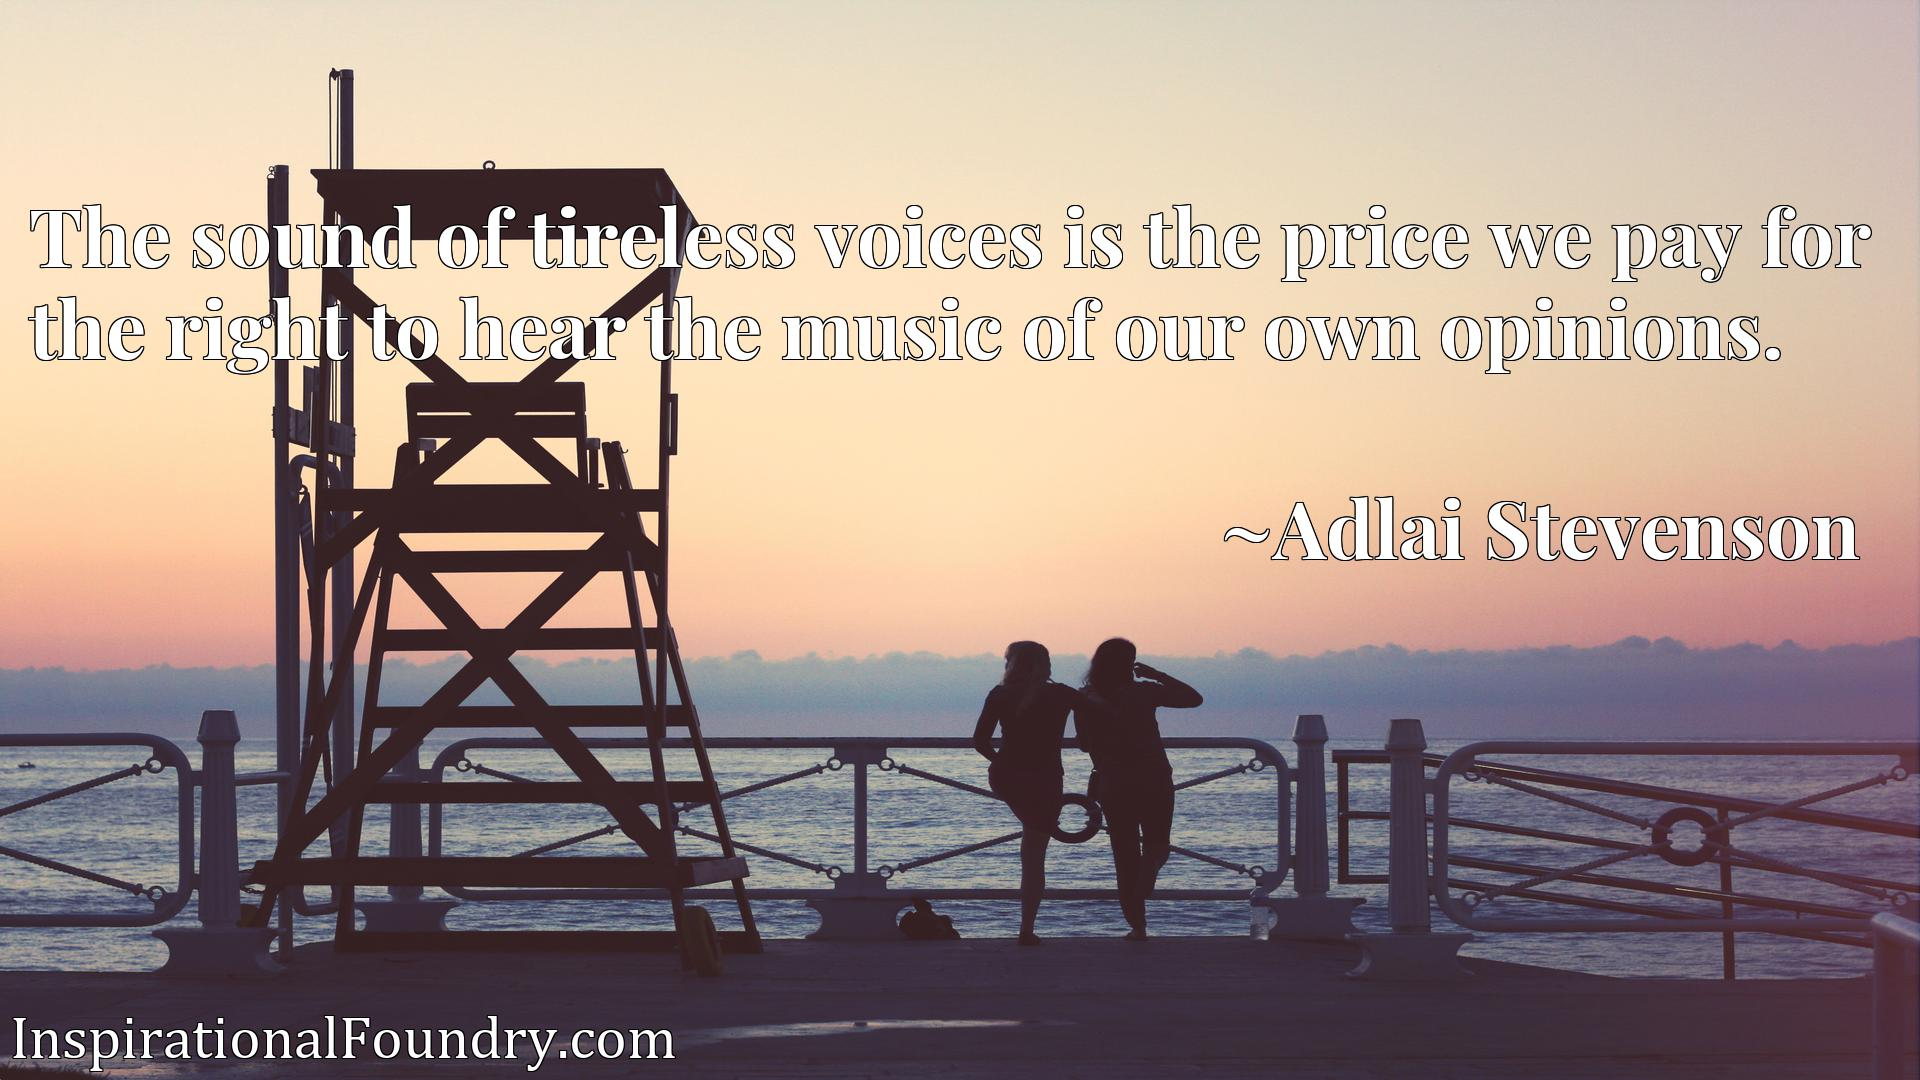 The sound of tireless voices is the price we pay for the right to hear the music of our own opinions.